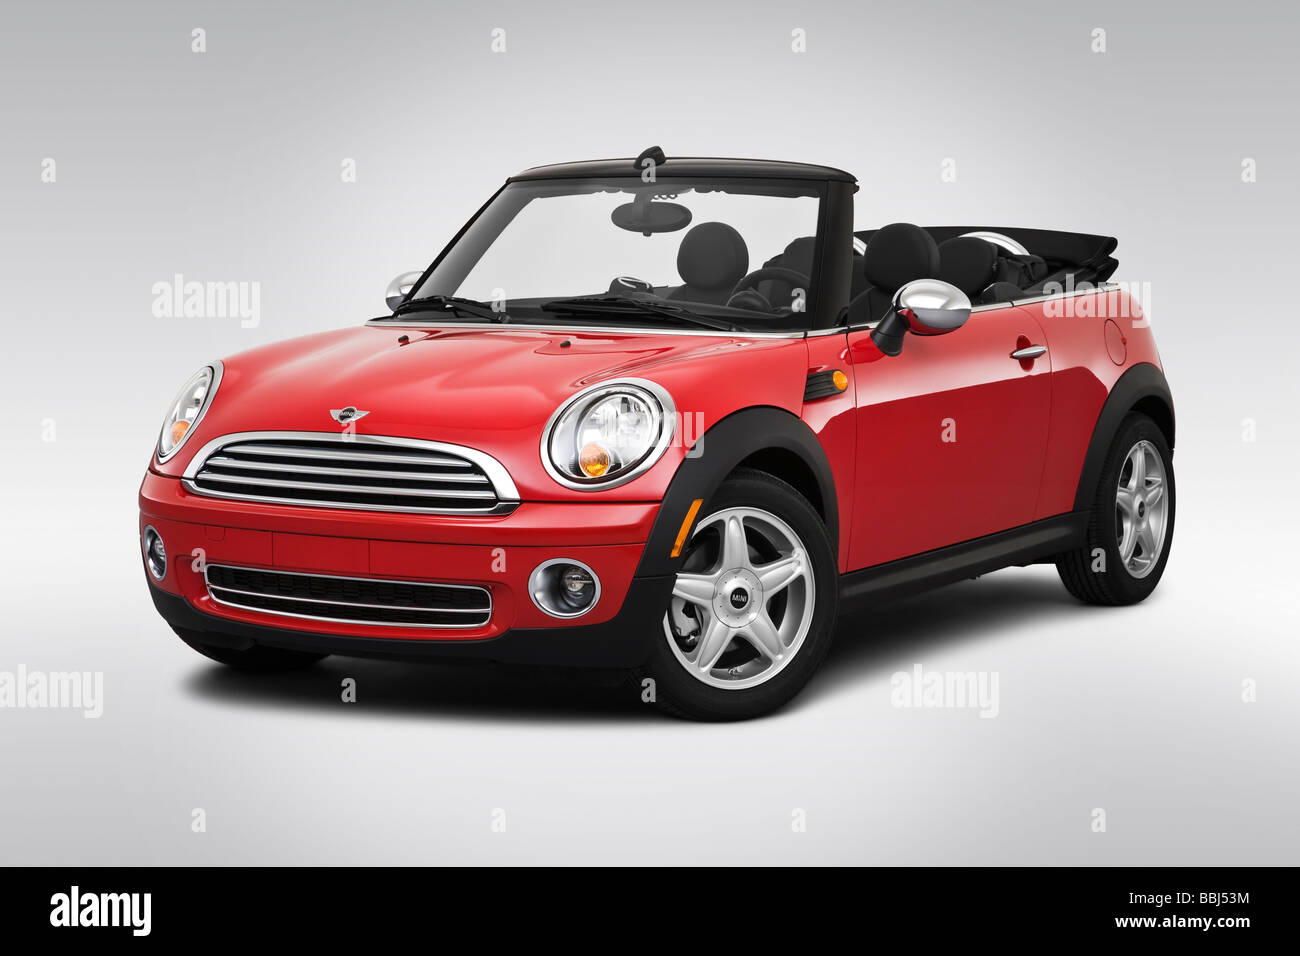 2009 Mini Cooper in Red - Front angle view - Stock Image